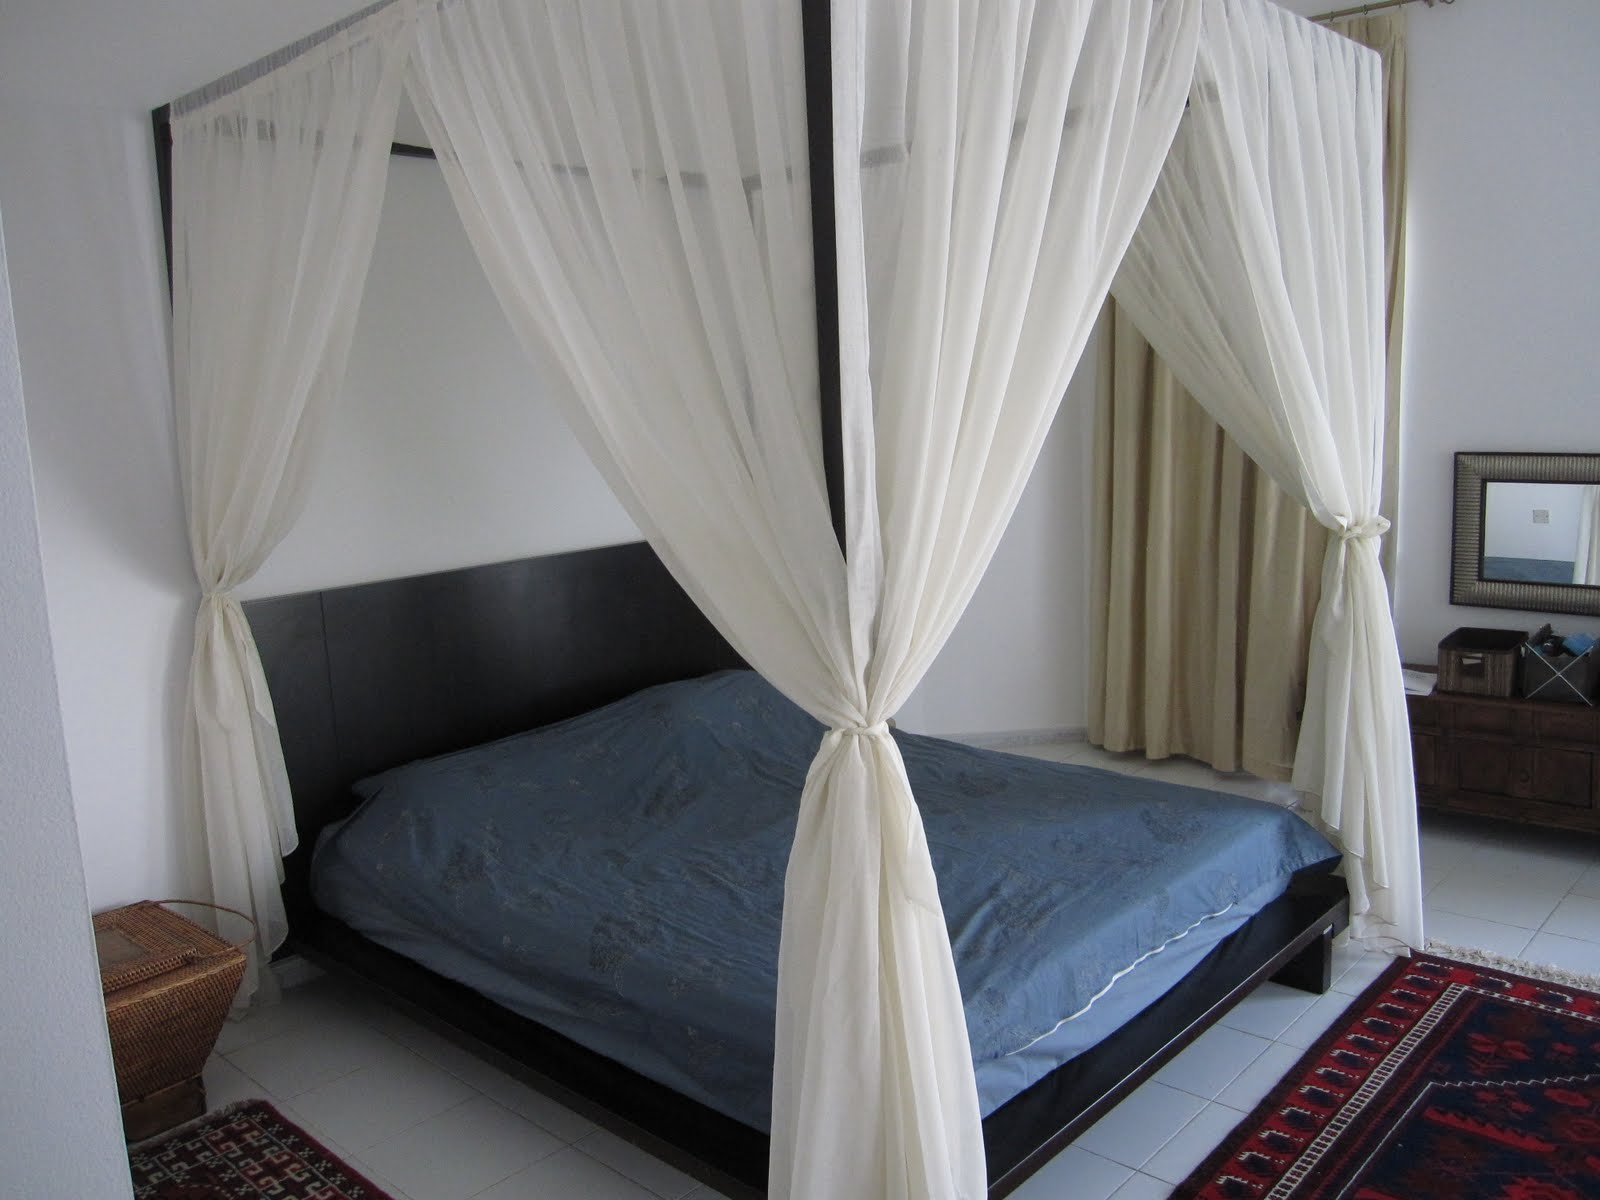 Grey Bedding and Sheer Curtain Completing Dark DIY Canopy Bed on White Tile Flooring near White Wall